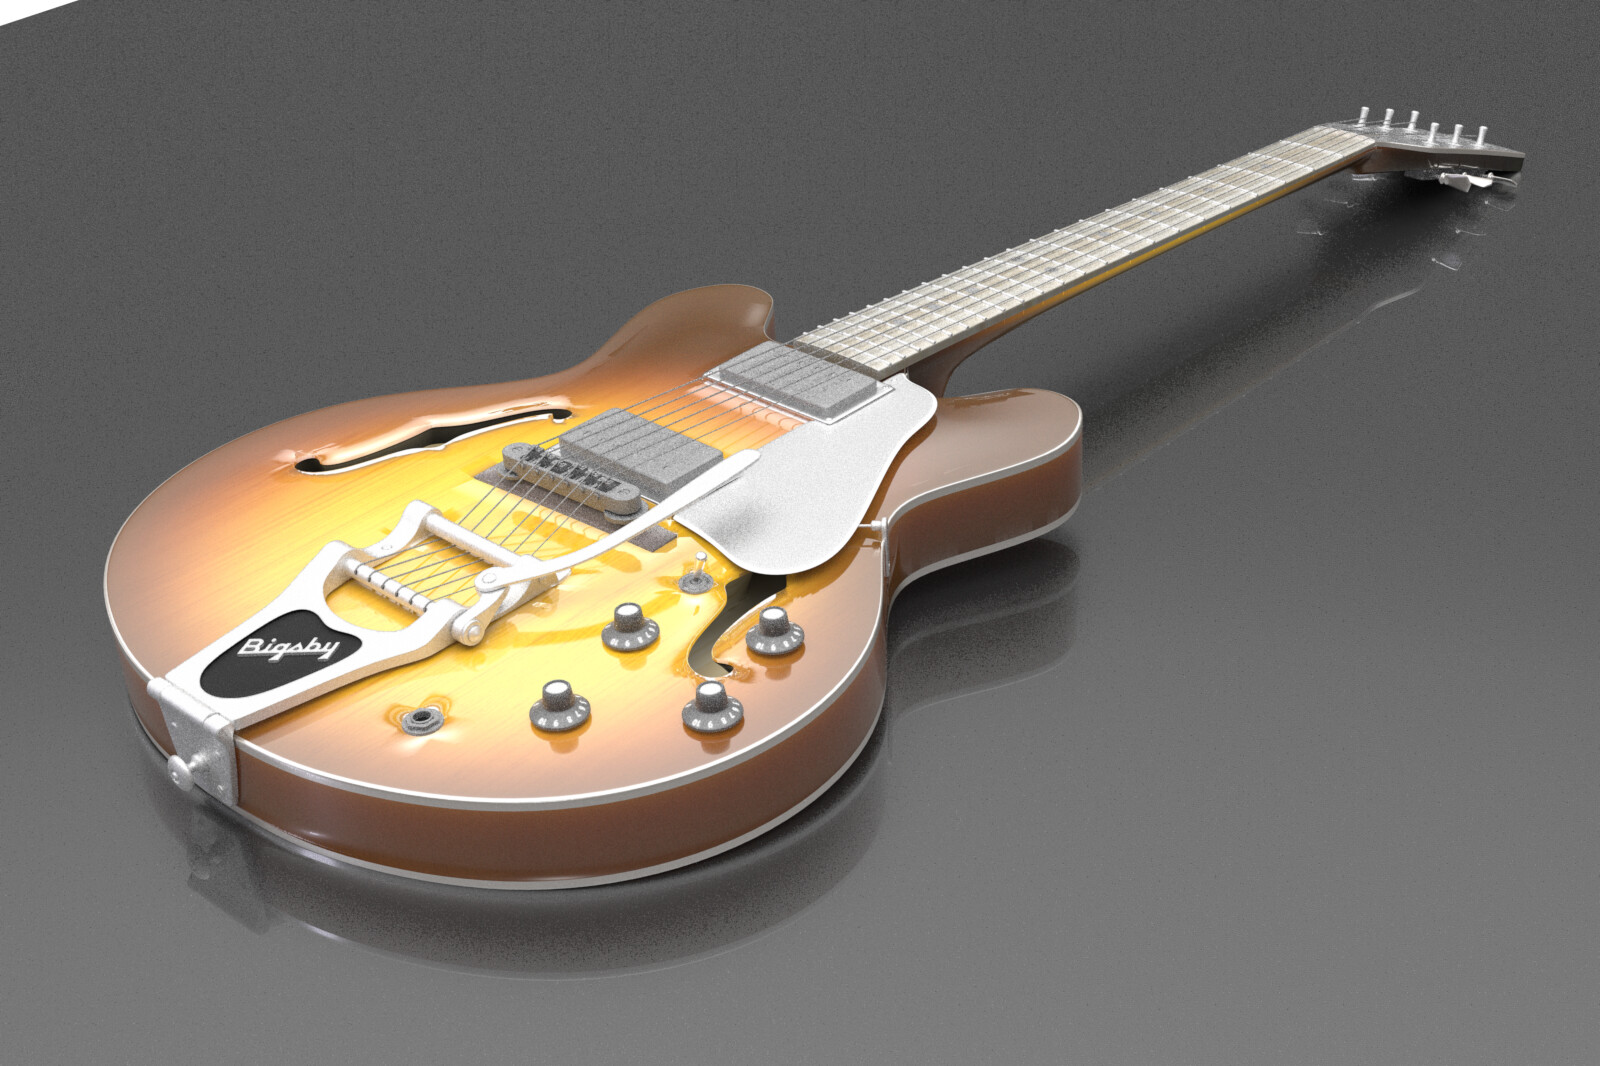 Arch-top jazz guitar modeled in Modo - this is an in-modo render. I converted this model to a native ArchiCAD object, with appropriate vectorial cleanups and the ability for the materials to be easily tweaked in use.